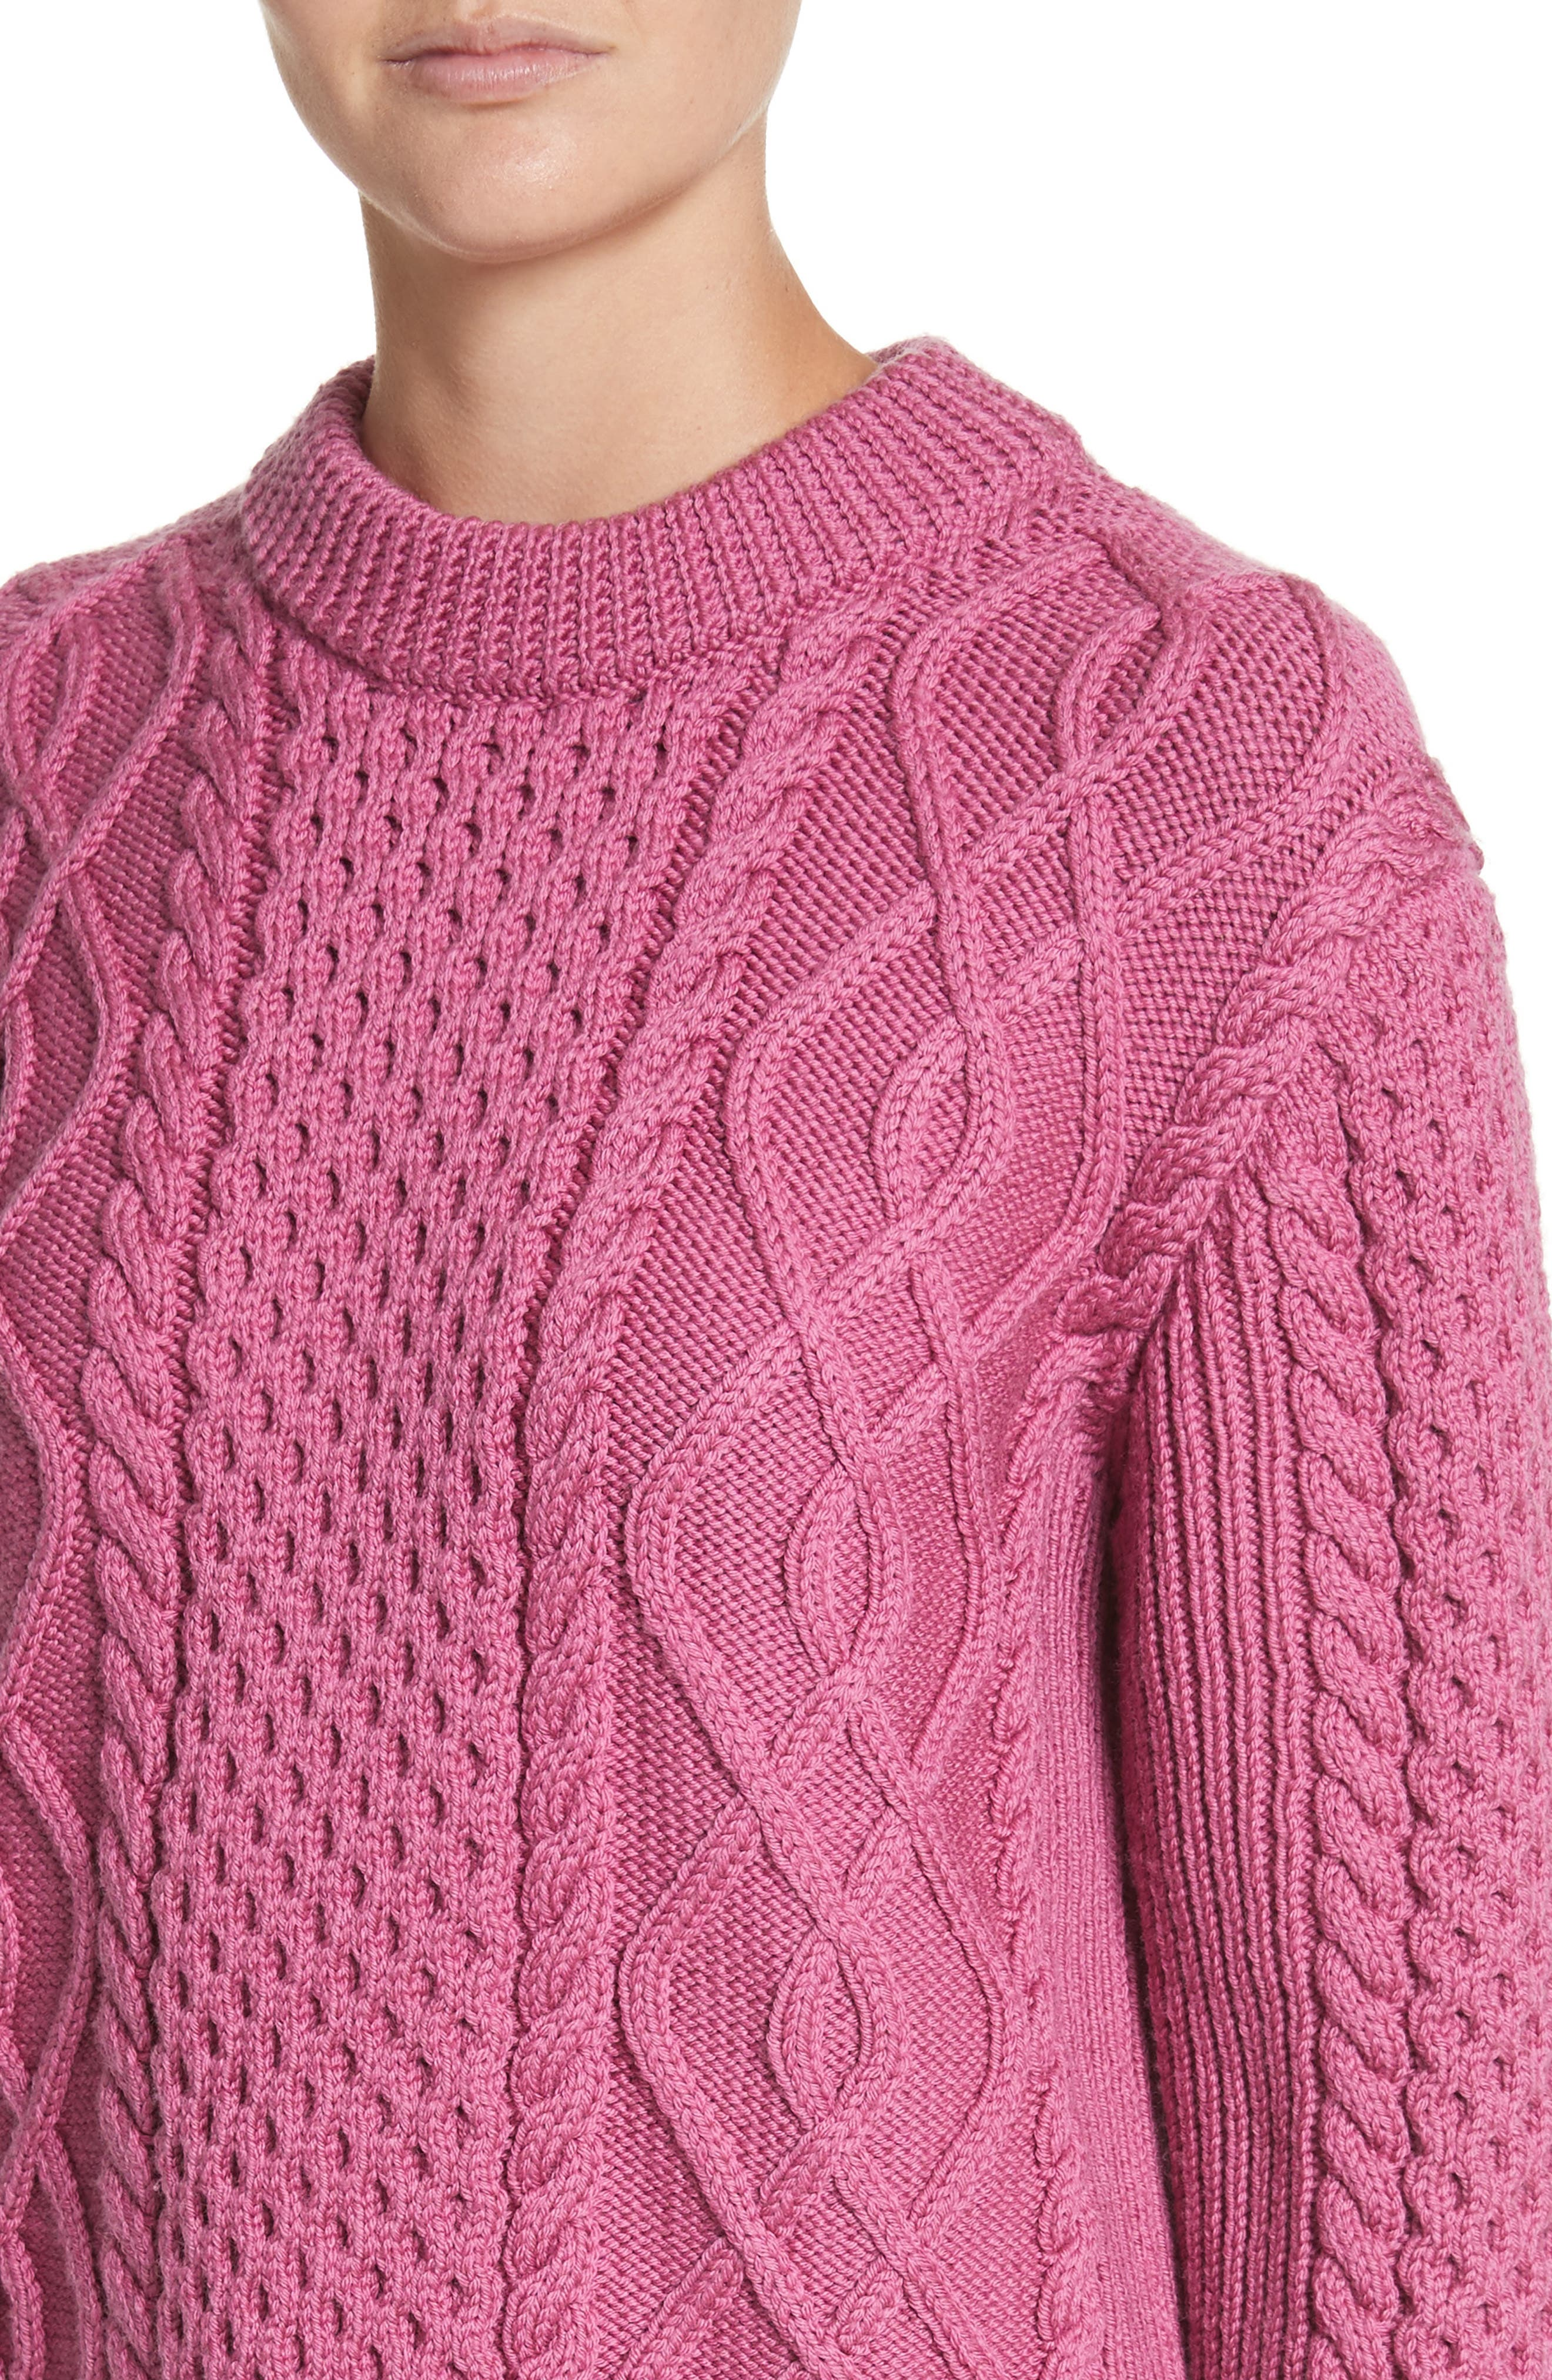 Merino Wool Cable Knit Sweater,                             Alternate thumbnail 4, color,